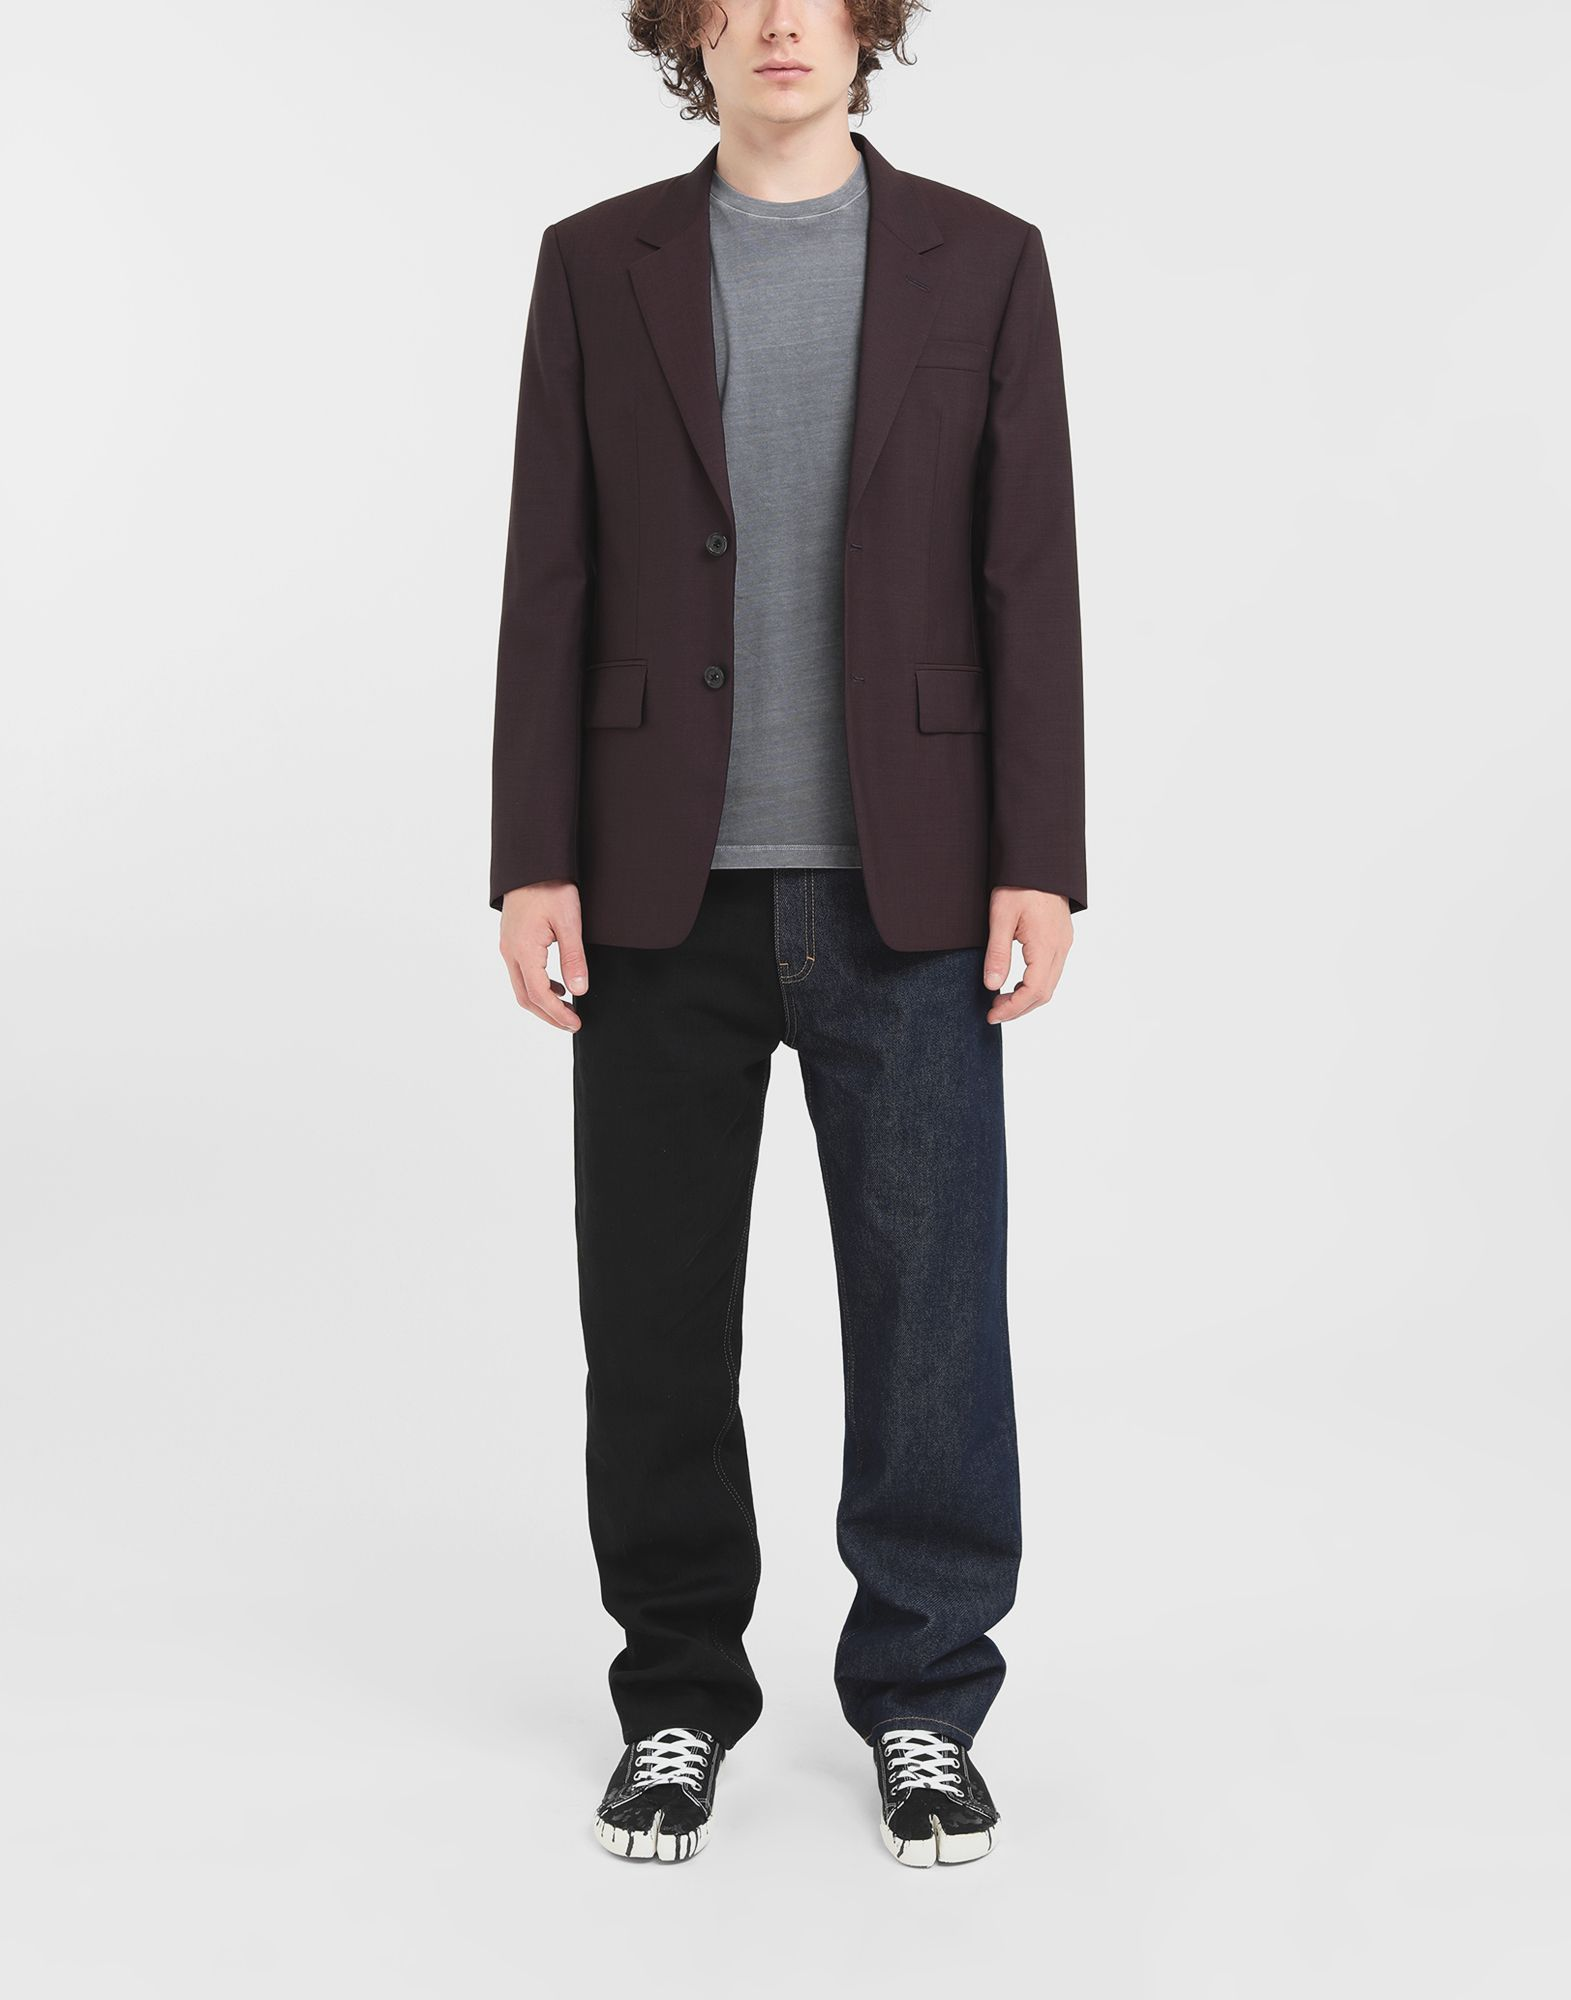 MAISON MARGIELA Wool blazer Jacket Man d